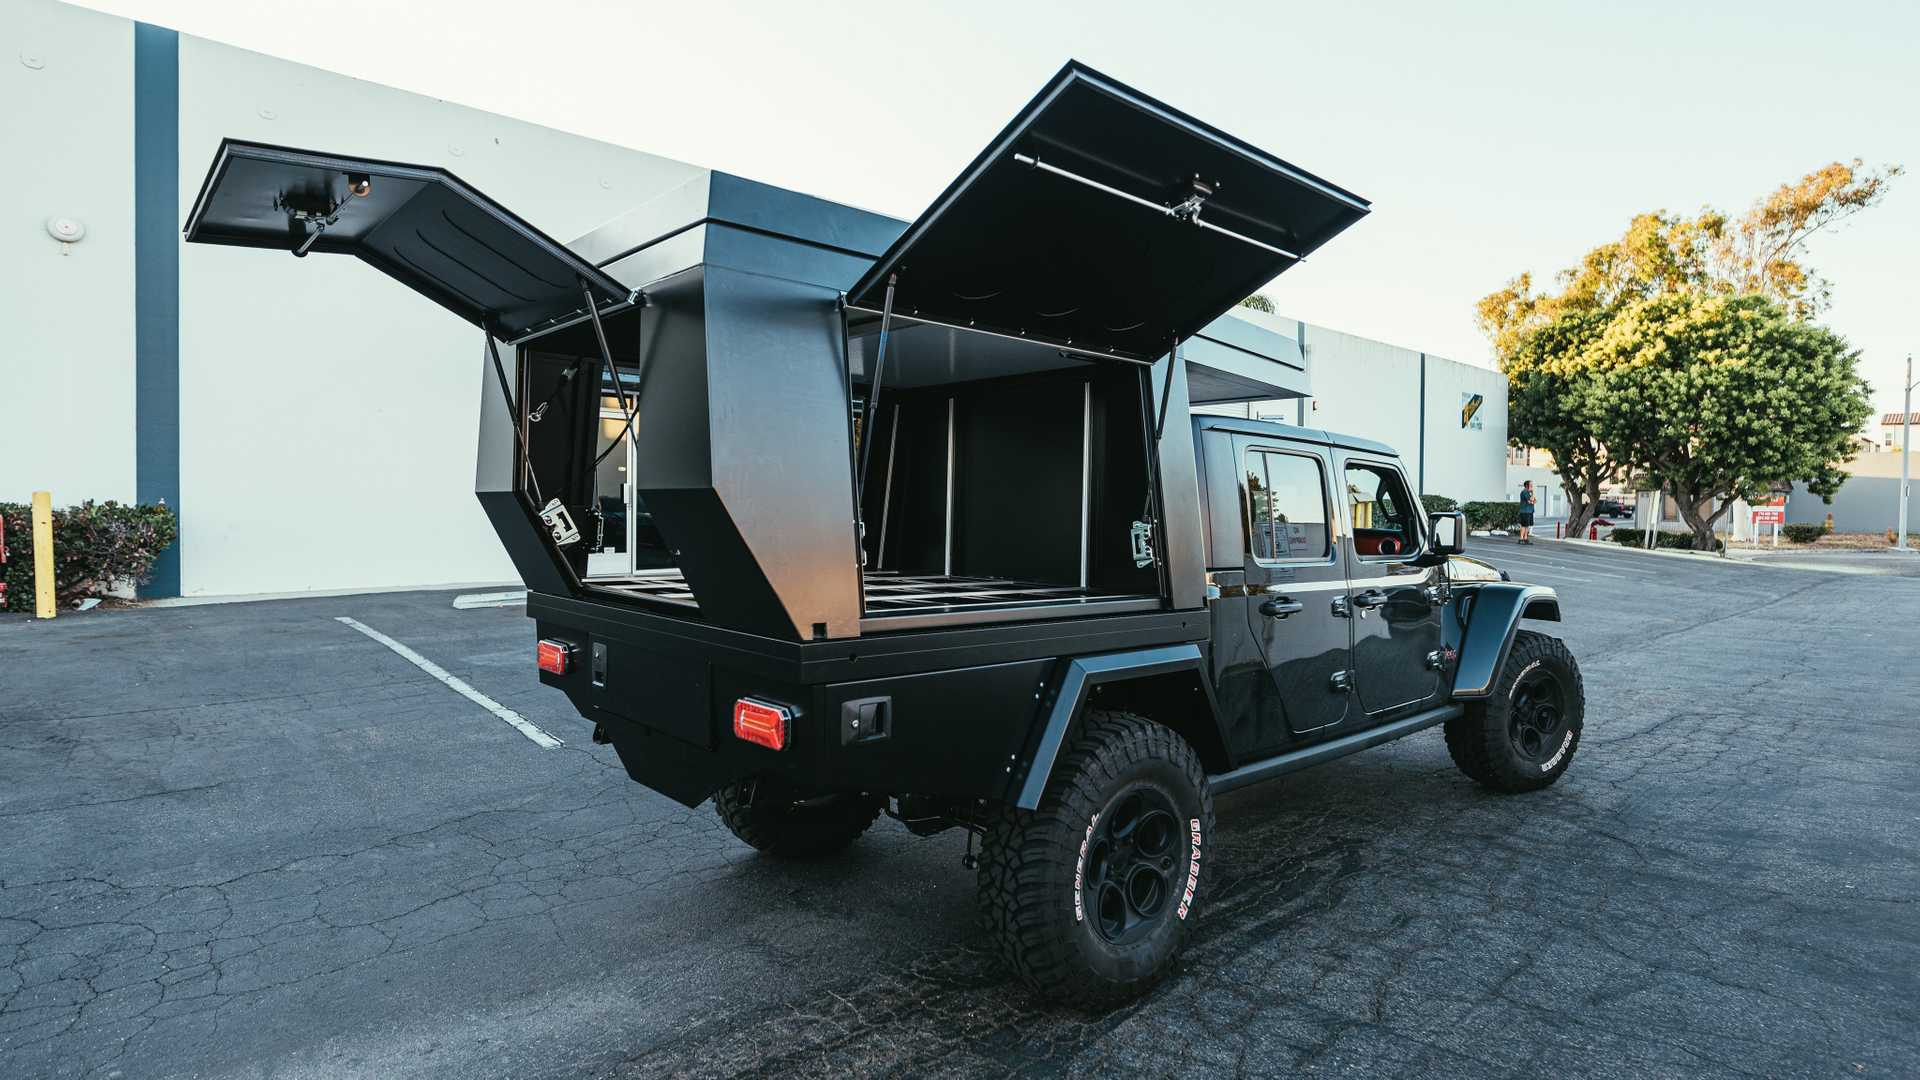 FiftyTen Jeep Gladiator Replaces Bed With Built-In Camper